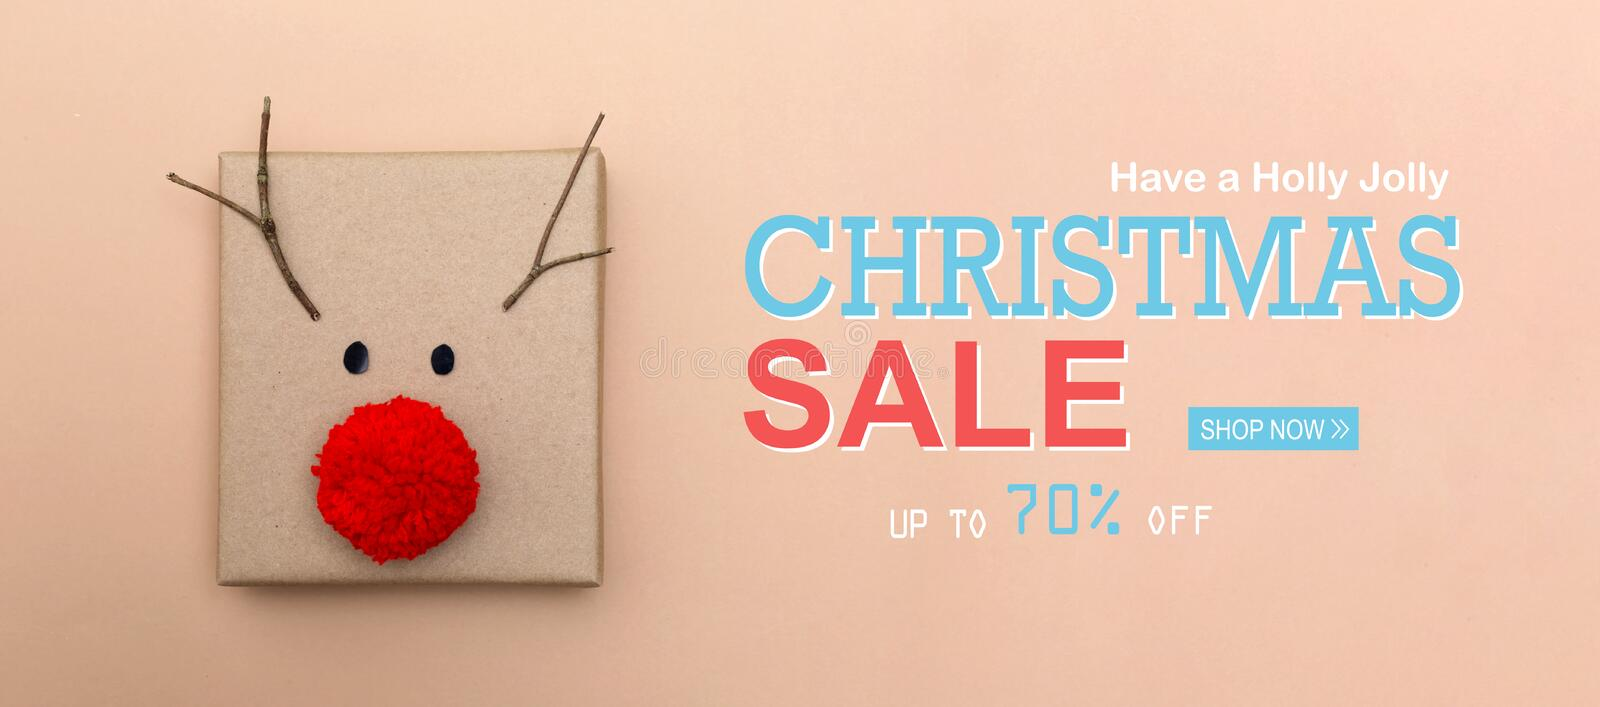 Christmas sale message with a reindeer gift box stock photo